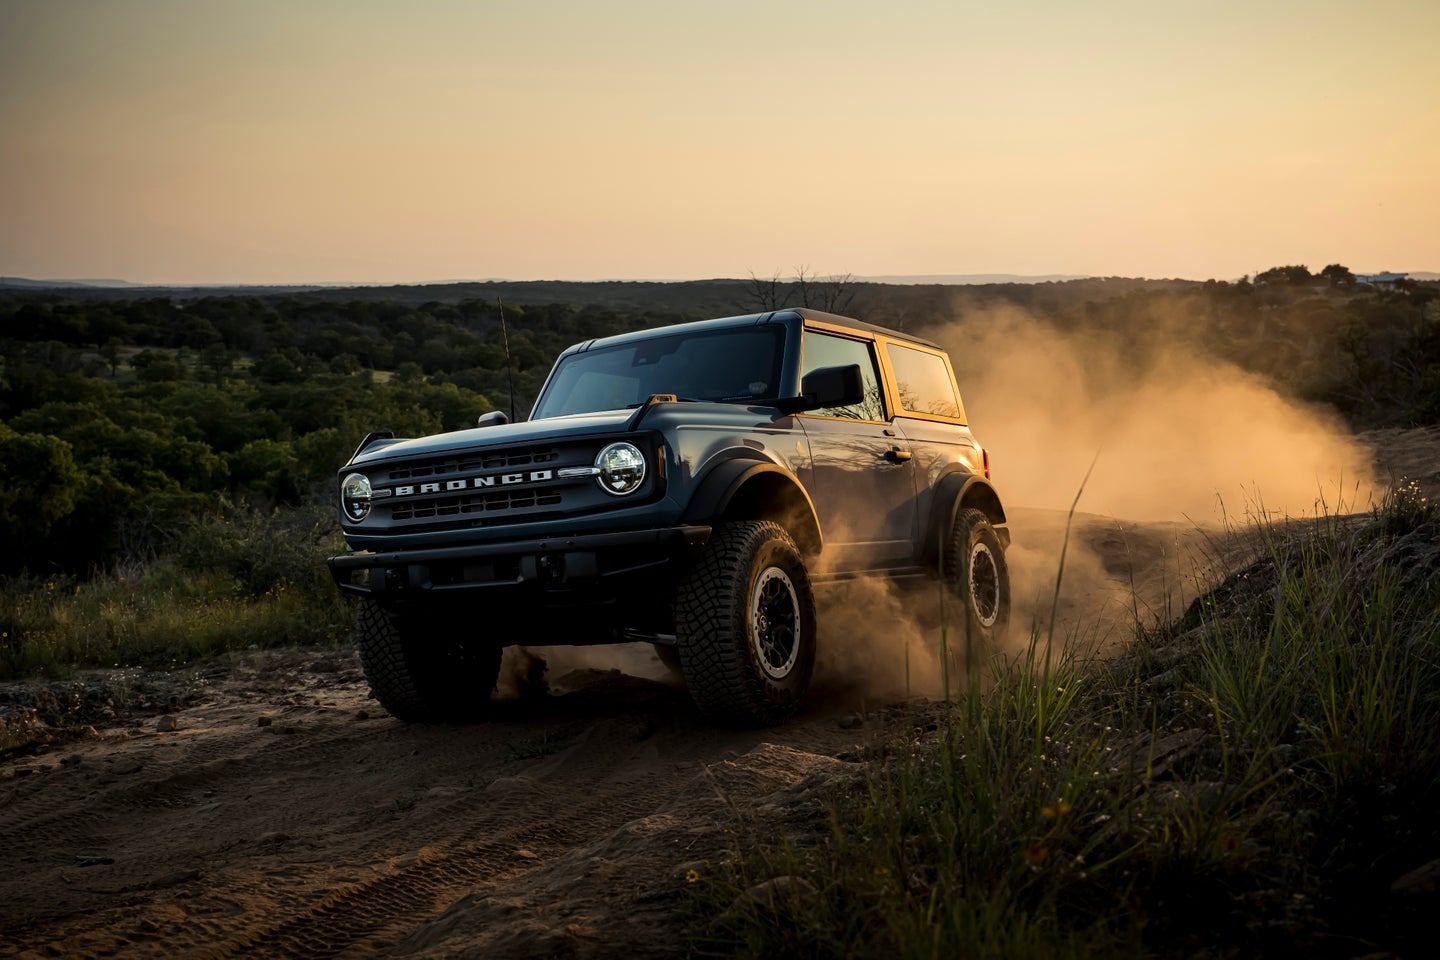 Ford's Bronco is being touted as the most capable 4x4 ever.